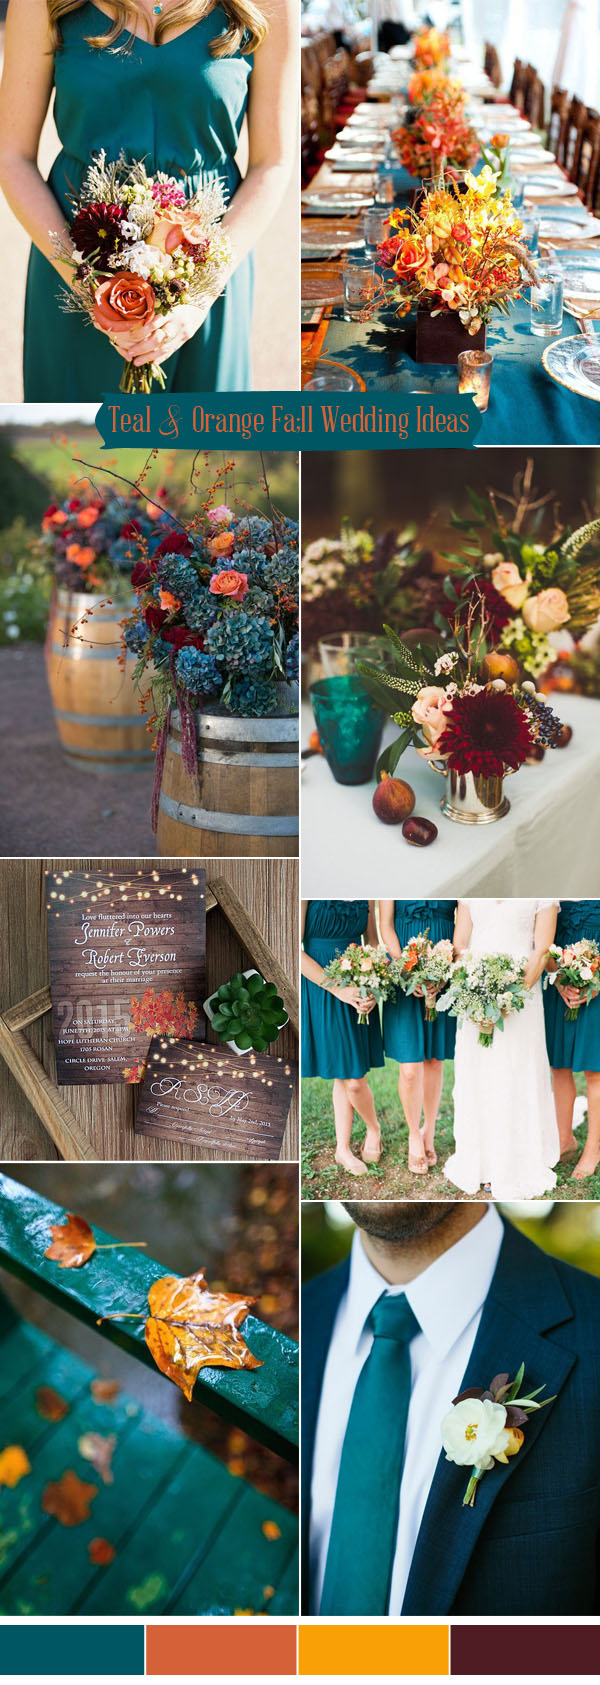 Ten prettiest shades of blue for 2017 wedding color ideas romantic teal blue and orange rustic fall wedding colors for 2017 trends junglespirit Image collections